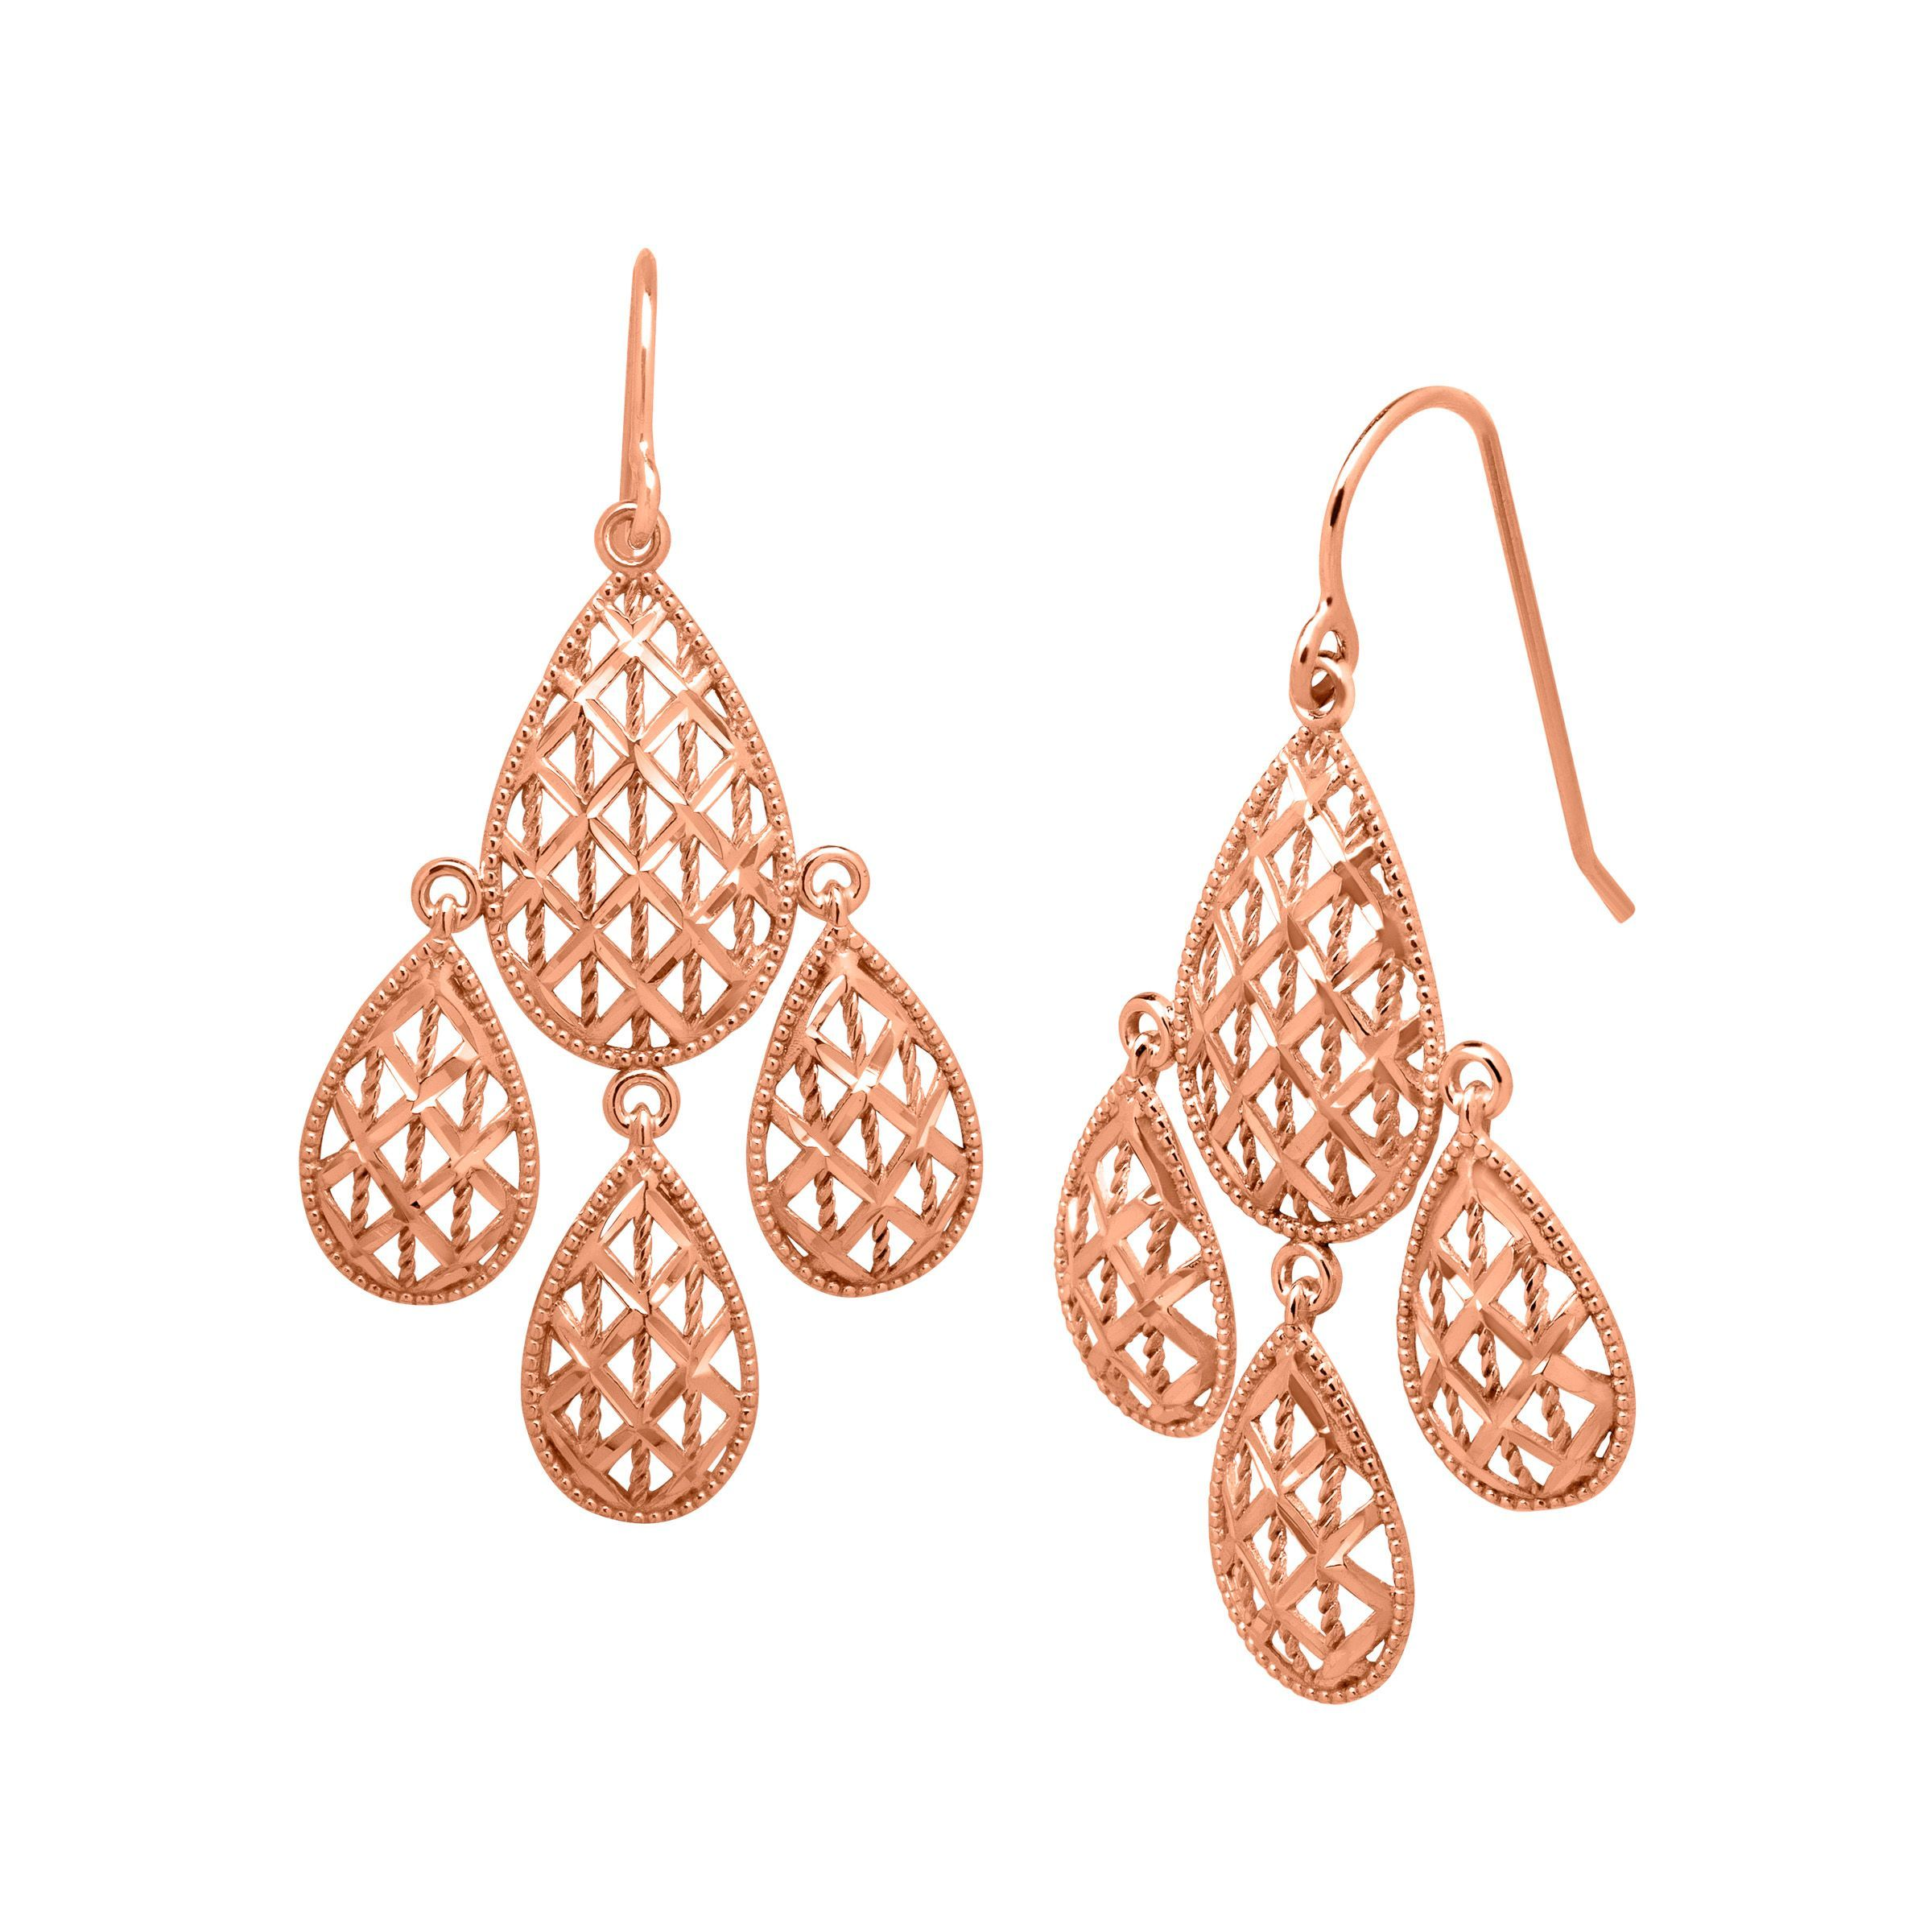 Just Gold Chandelier Mesh Earrings in 10K Rose Gold